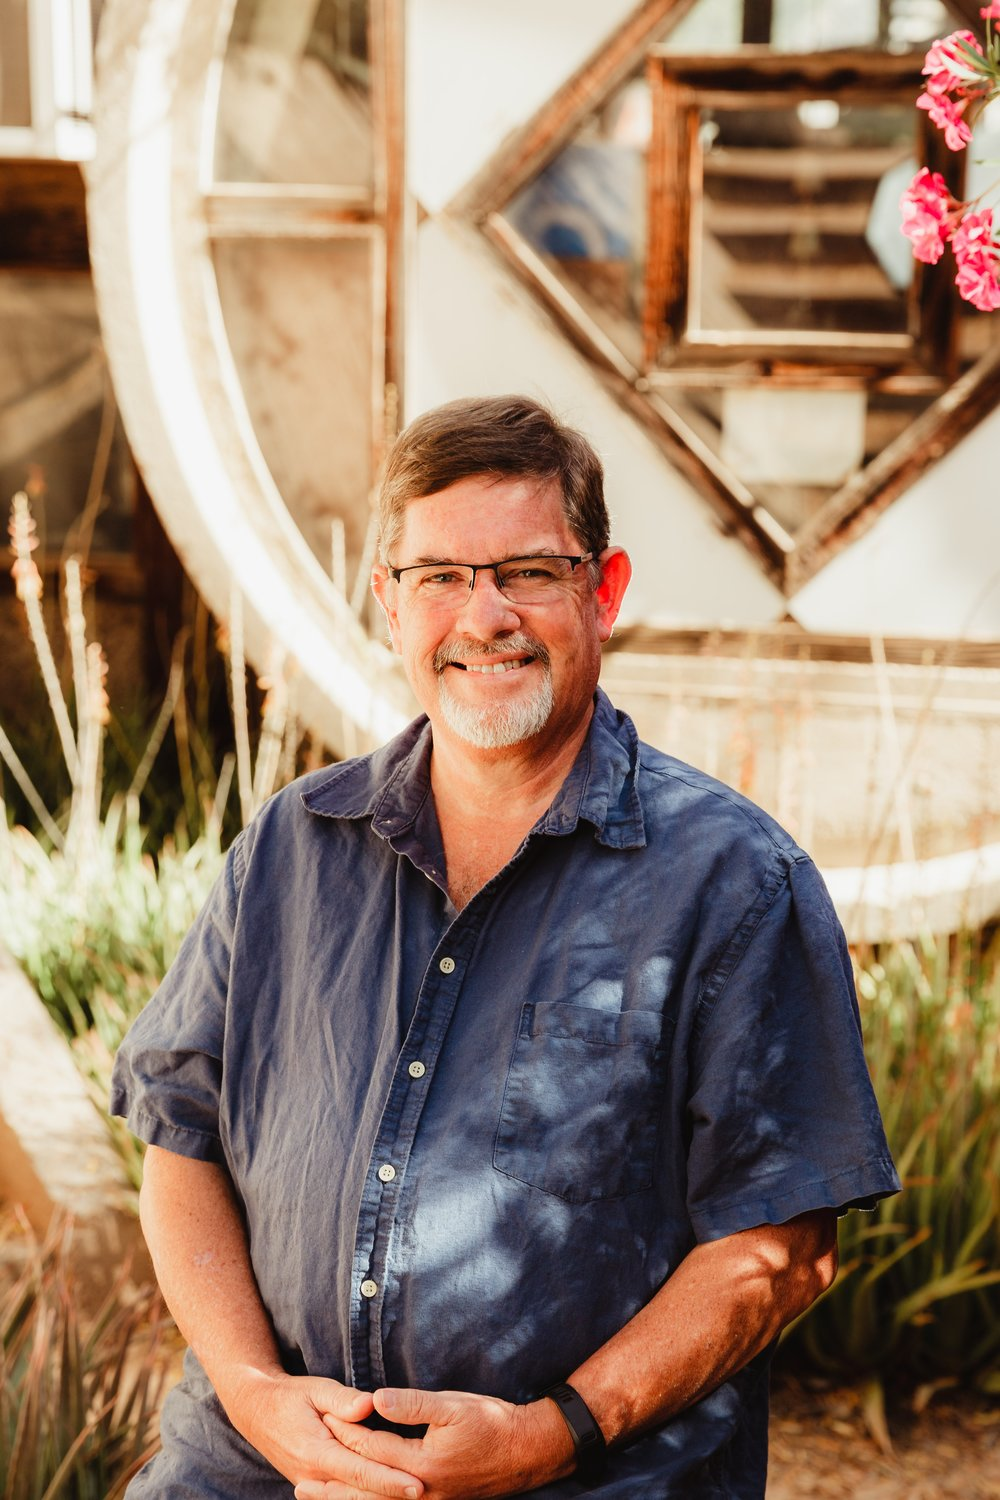 The Cosanti Foundation is looking for a new president and CEO as Patrick McWhorter has stepped down at the conclusion of his contract on March 31.